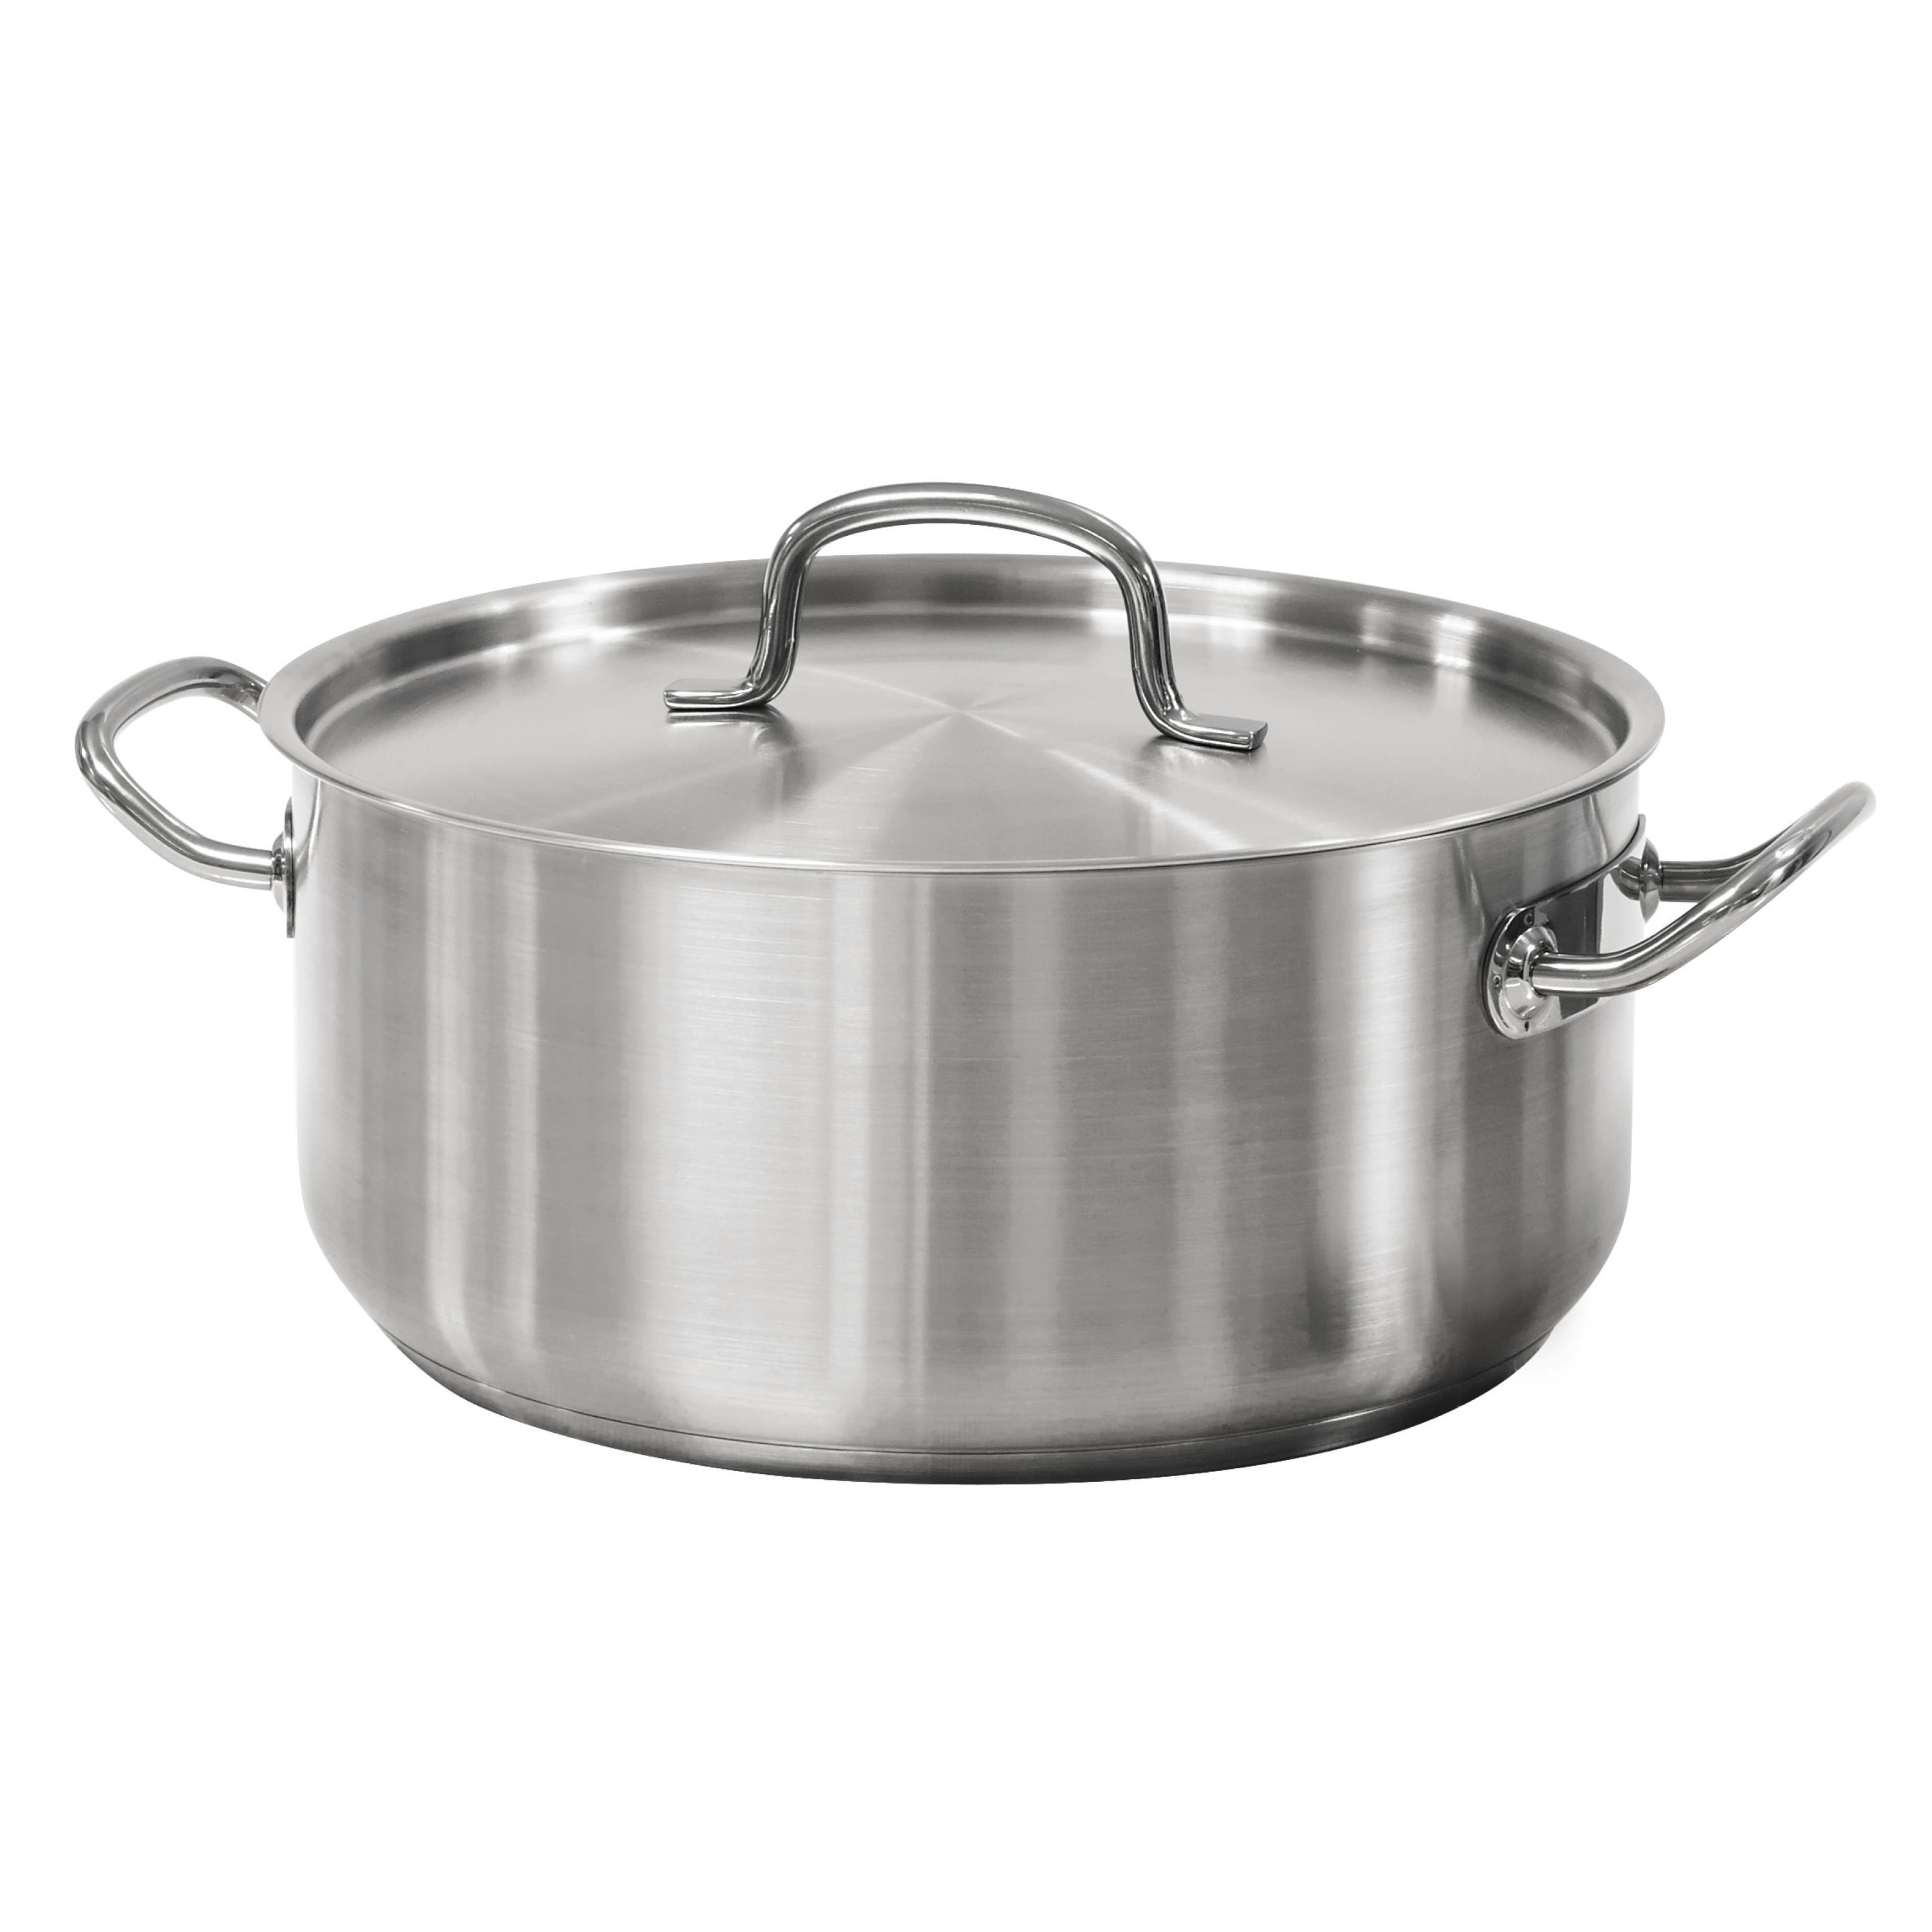 Tramontina Pro-Line 9 Qt. Stainless Steel Dutch Oven & Lid by Tramontina